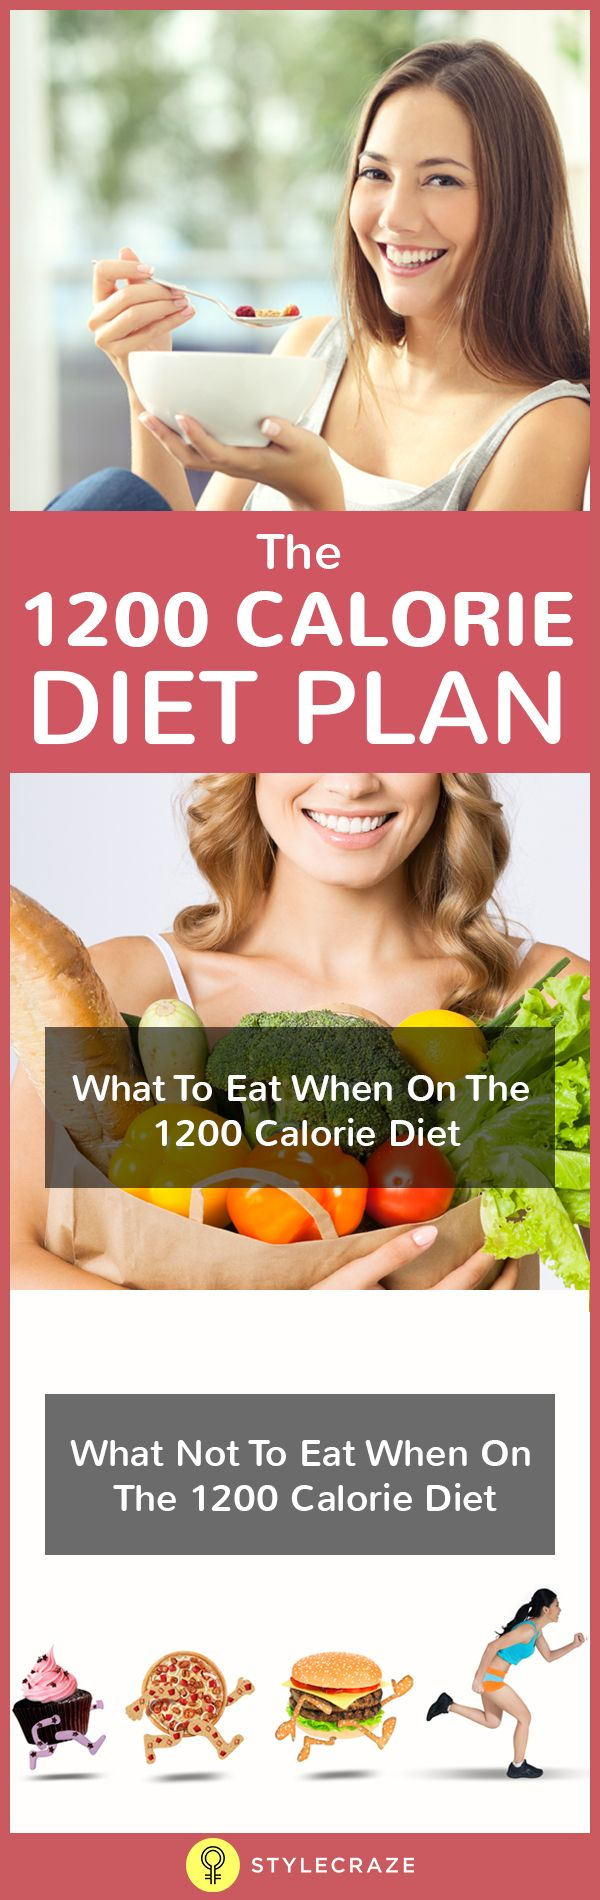 This article provides detailed information on all you need to know for active weight loss while on the 1200 calorie diet plan.